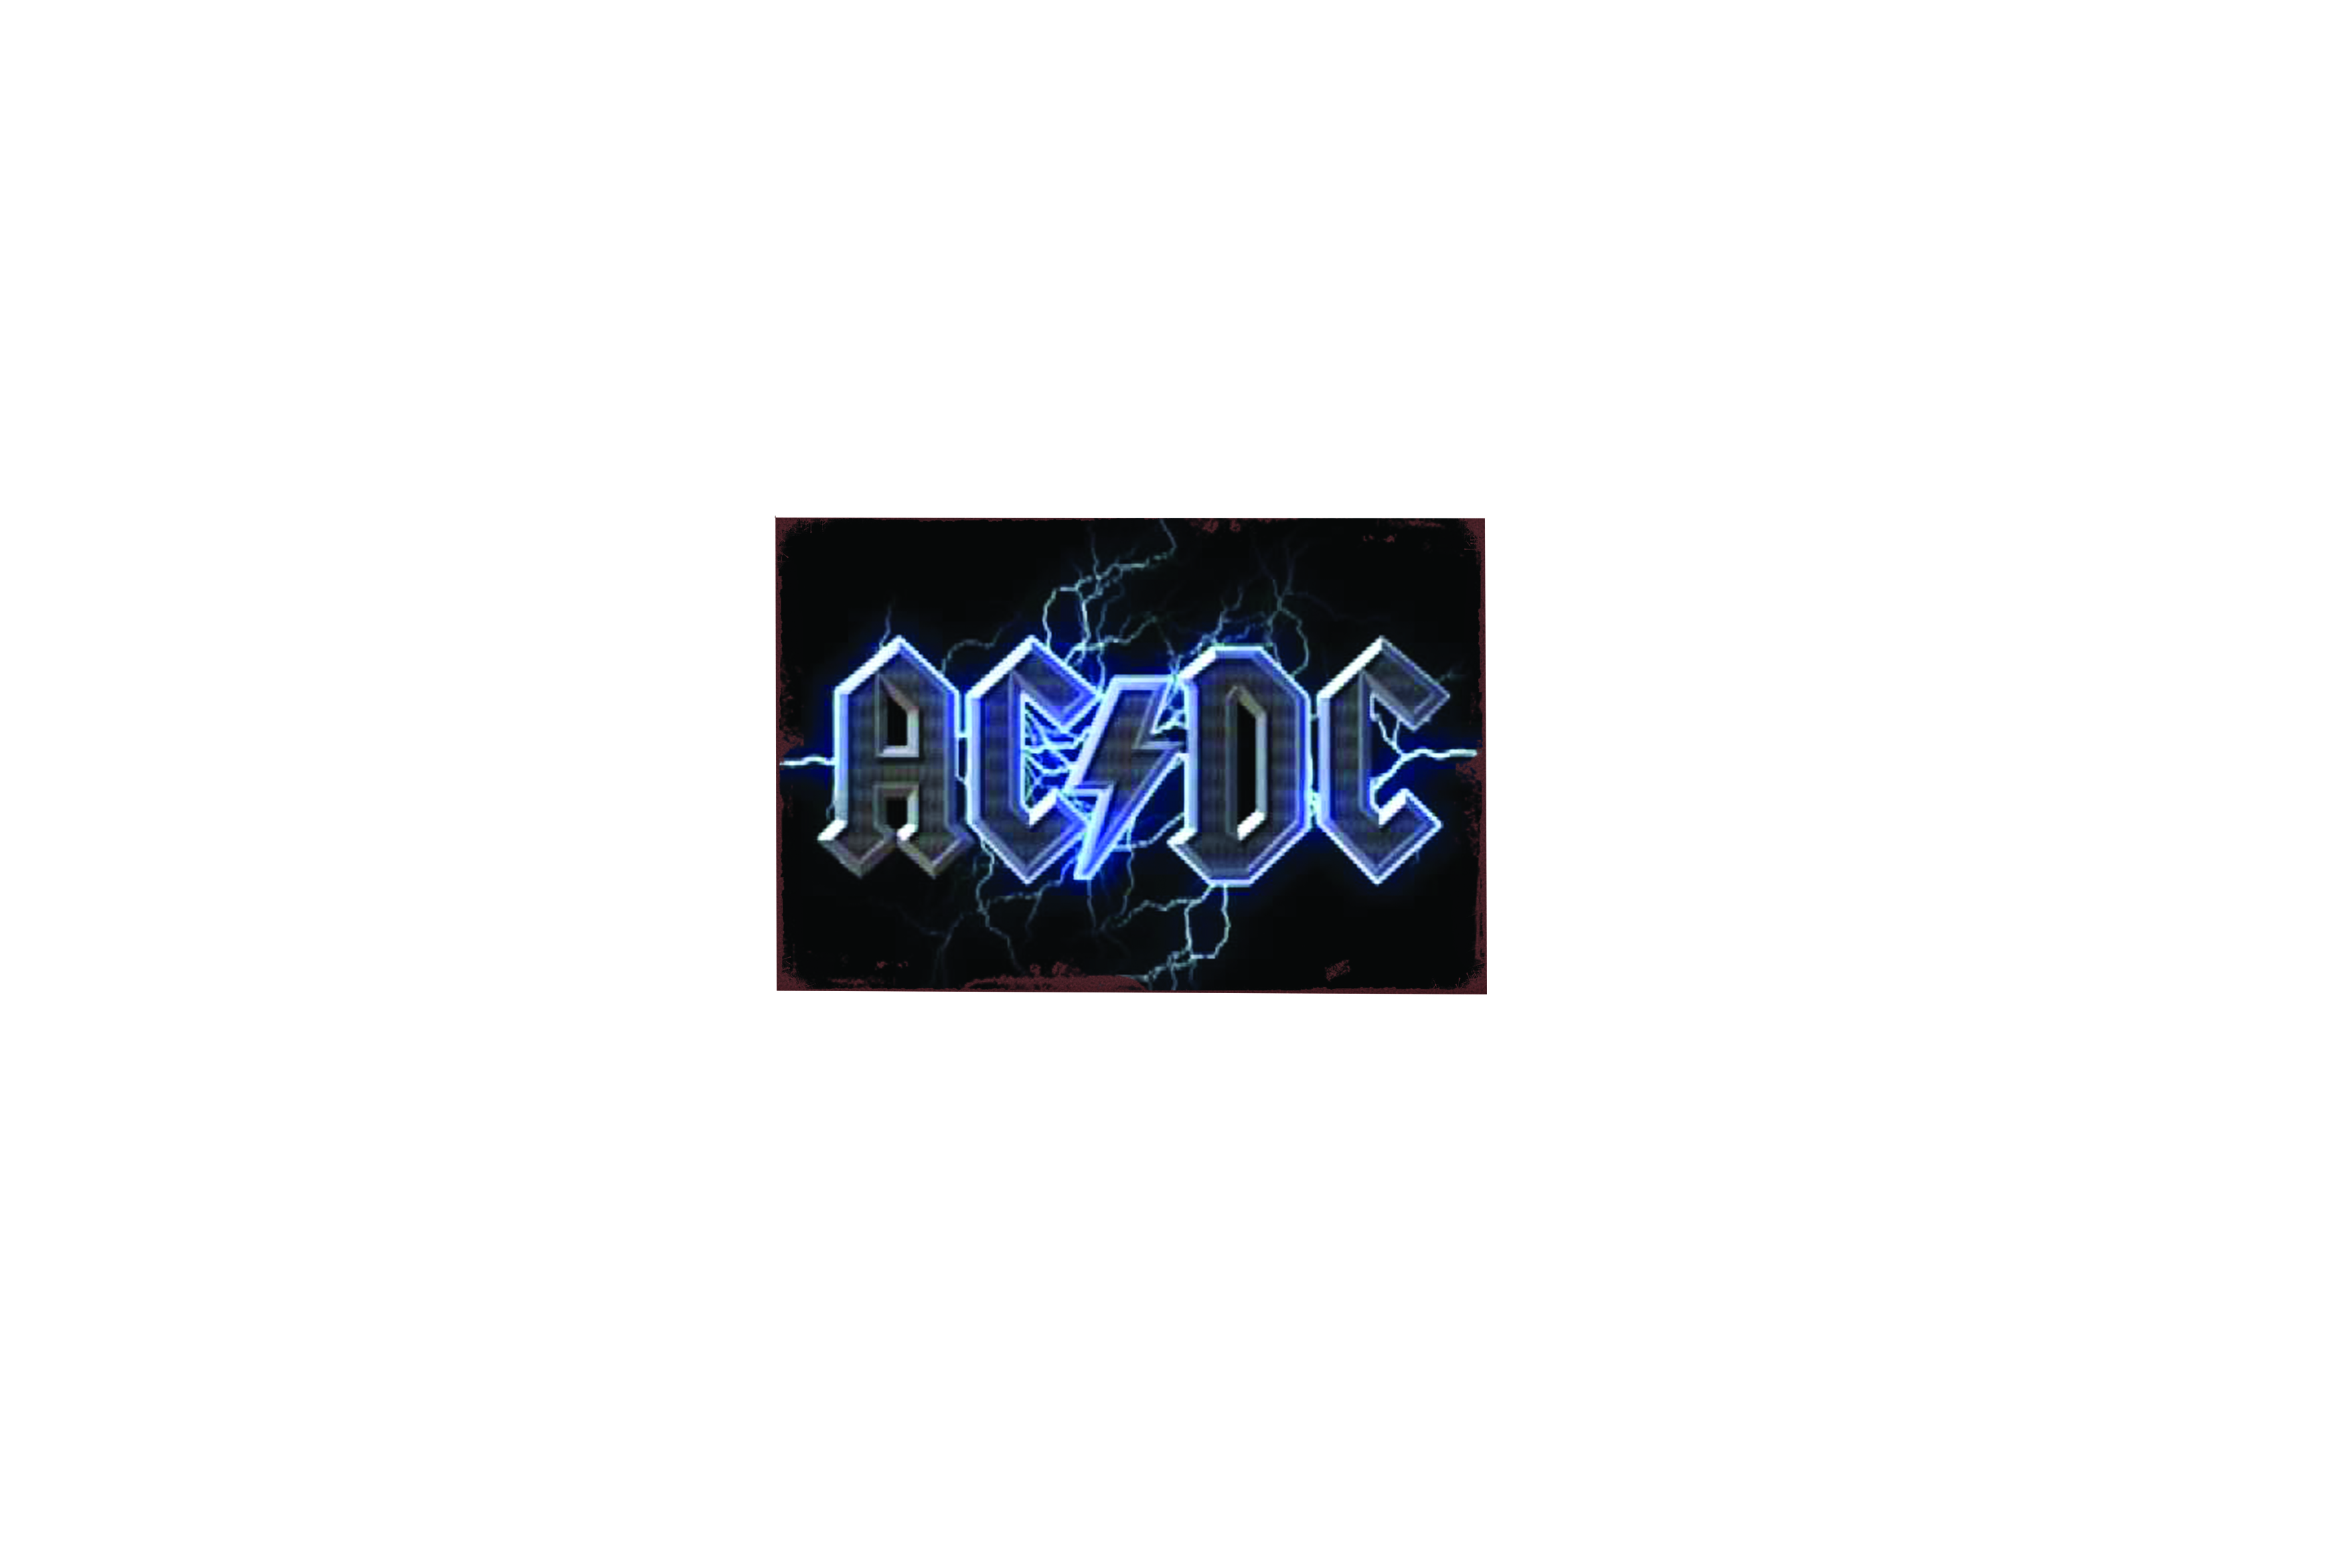 Magnetka - AC/DC lighting